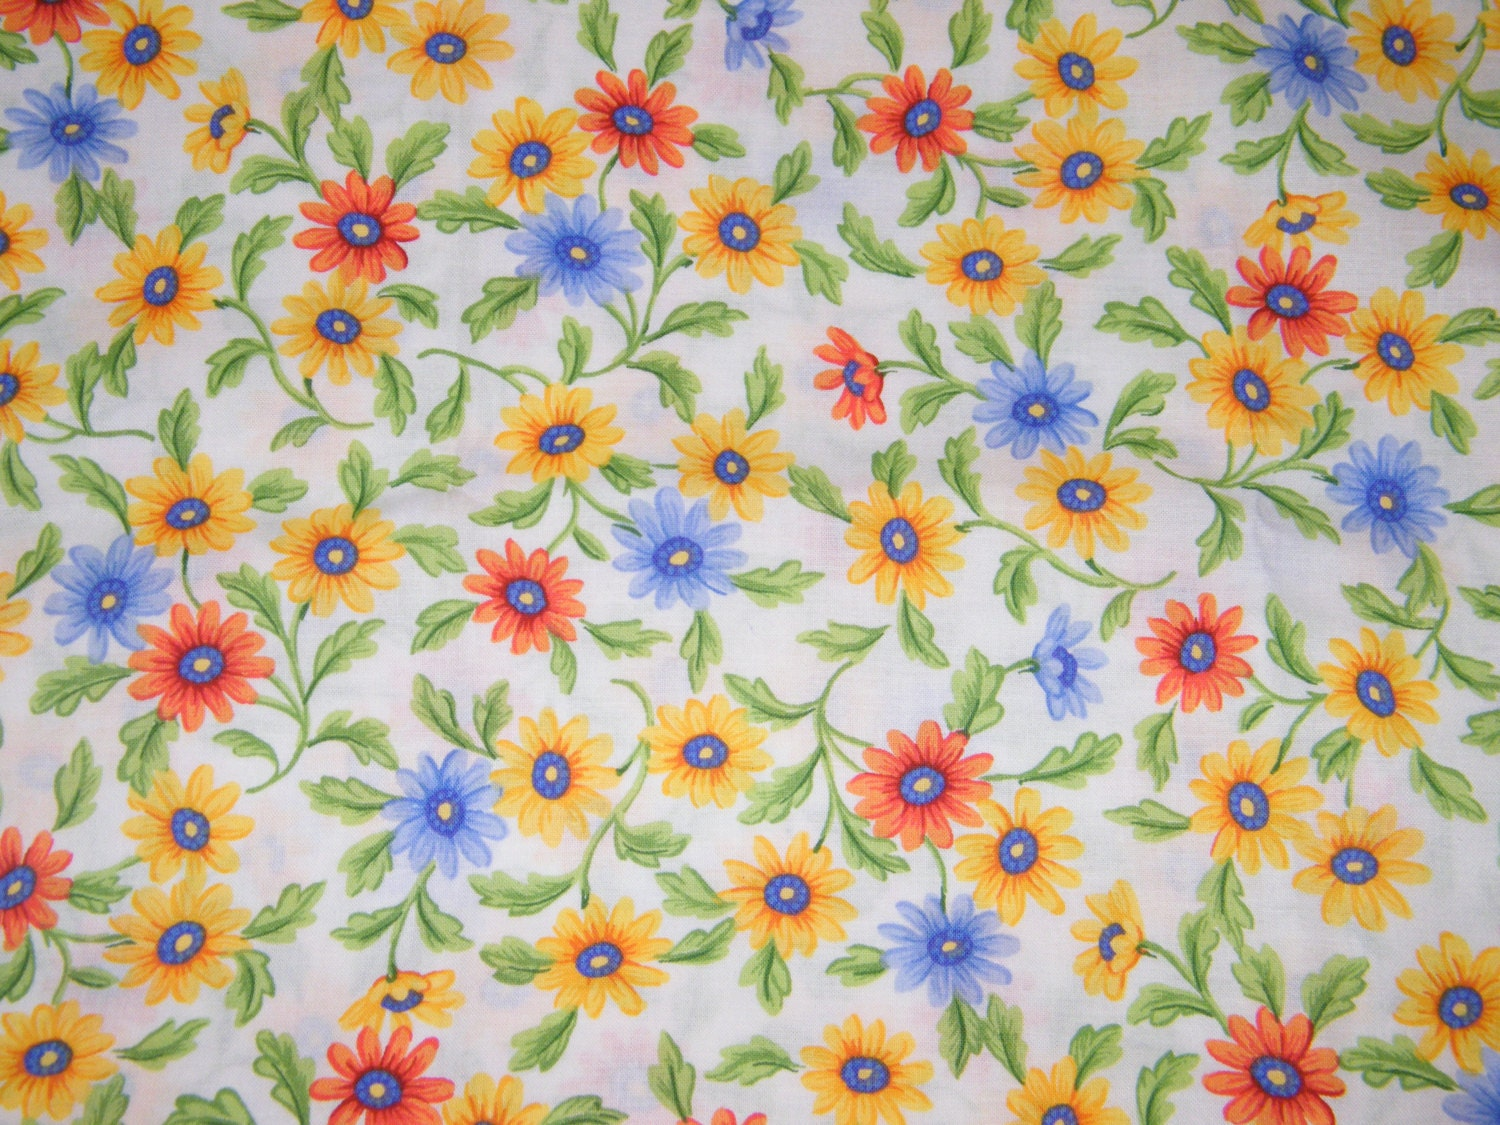 bty blue orange yellow floral print 100 cotton quilt crafting fabric by the yard from. Black Bedroom Furniture Sets. Home Design Ideas